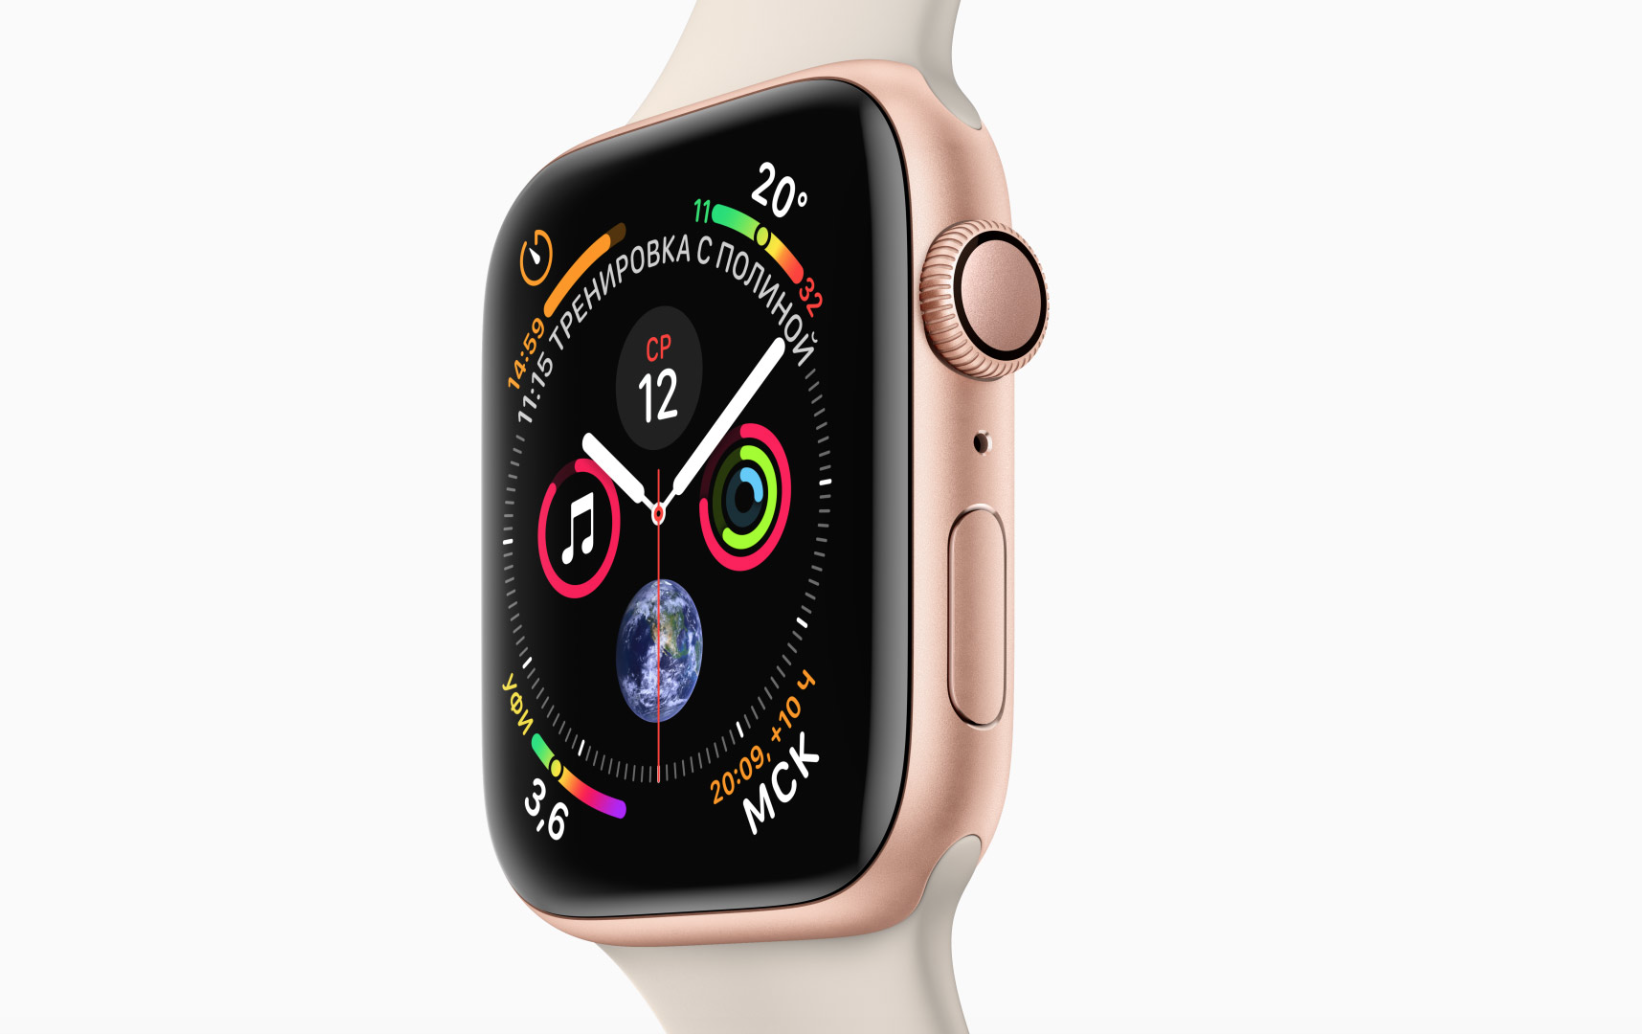 Deliveries of Apple Watch will grow by 40% in 2019